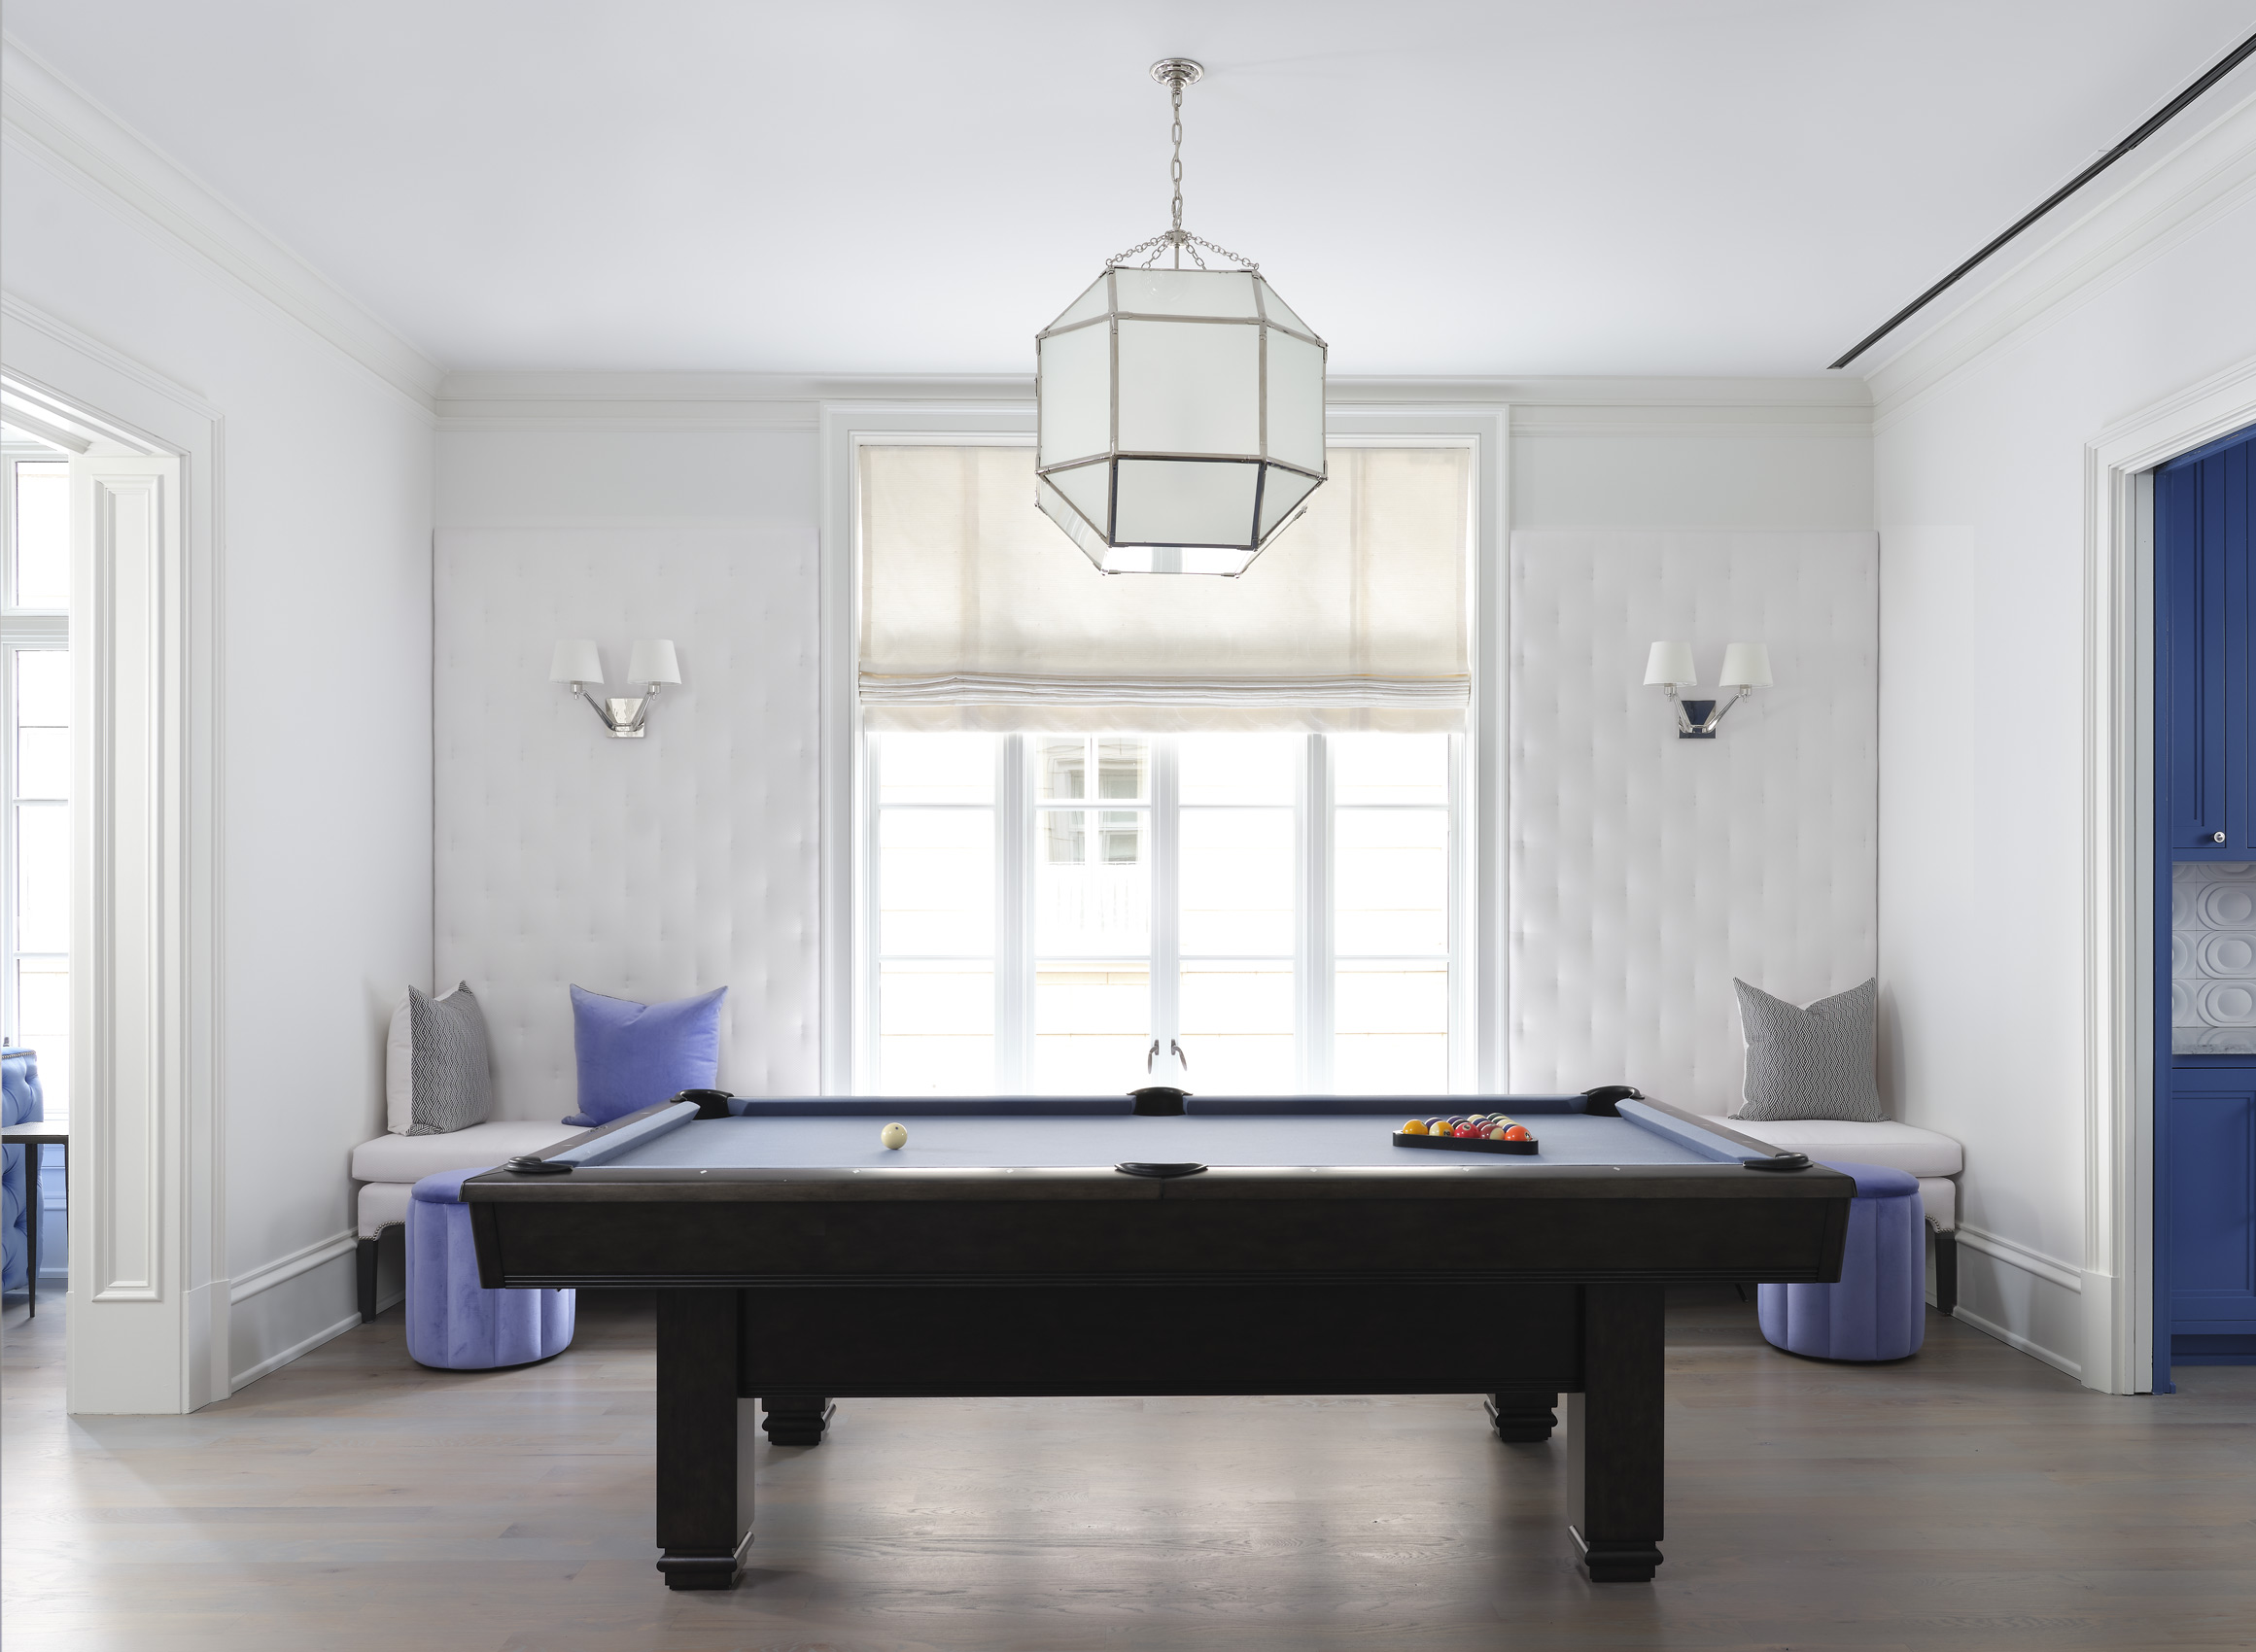 Pool table room by Kay Douglass, Interiors photo by Mali Azima.